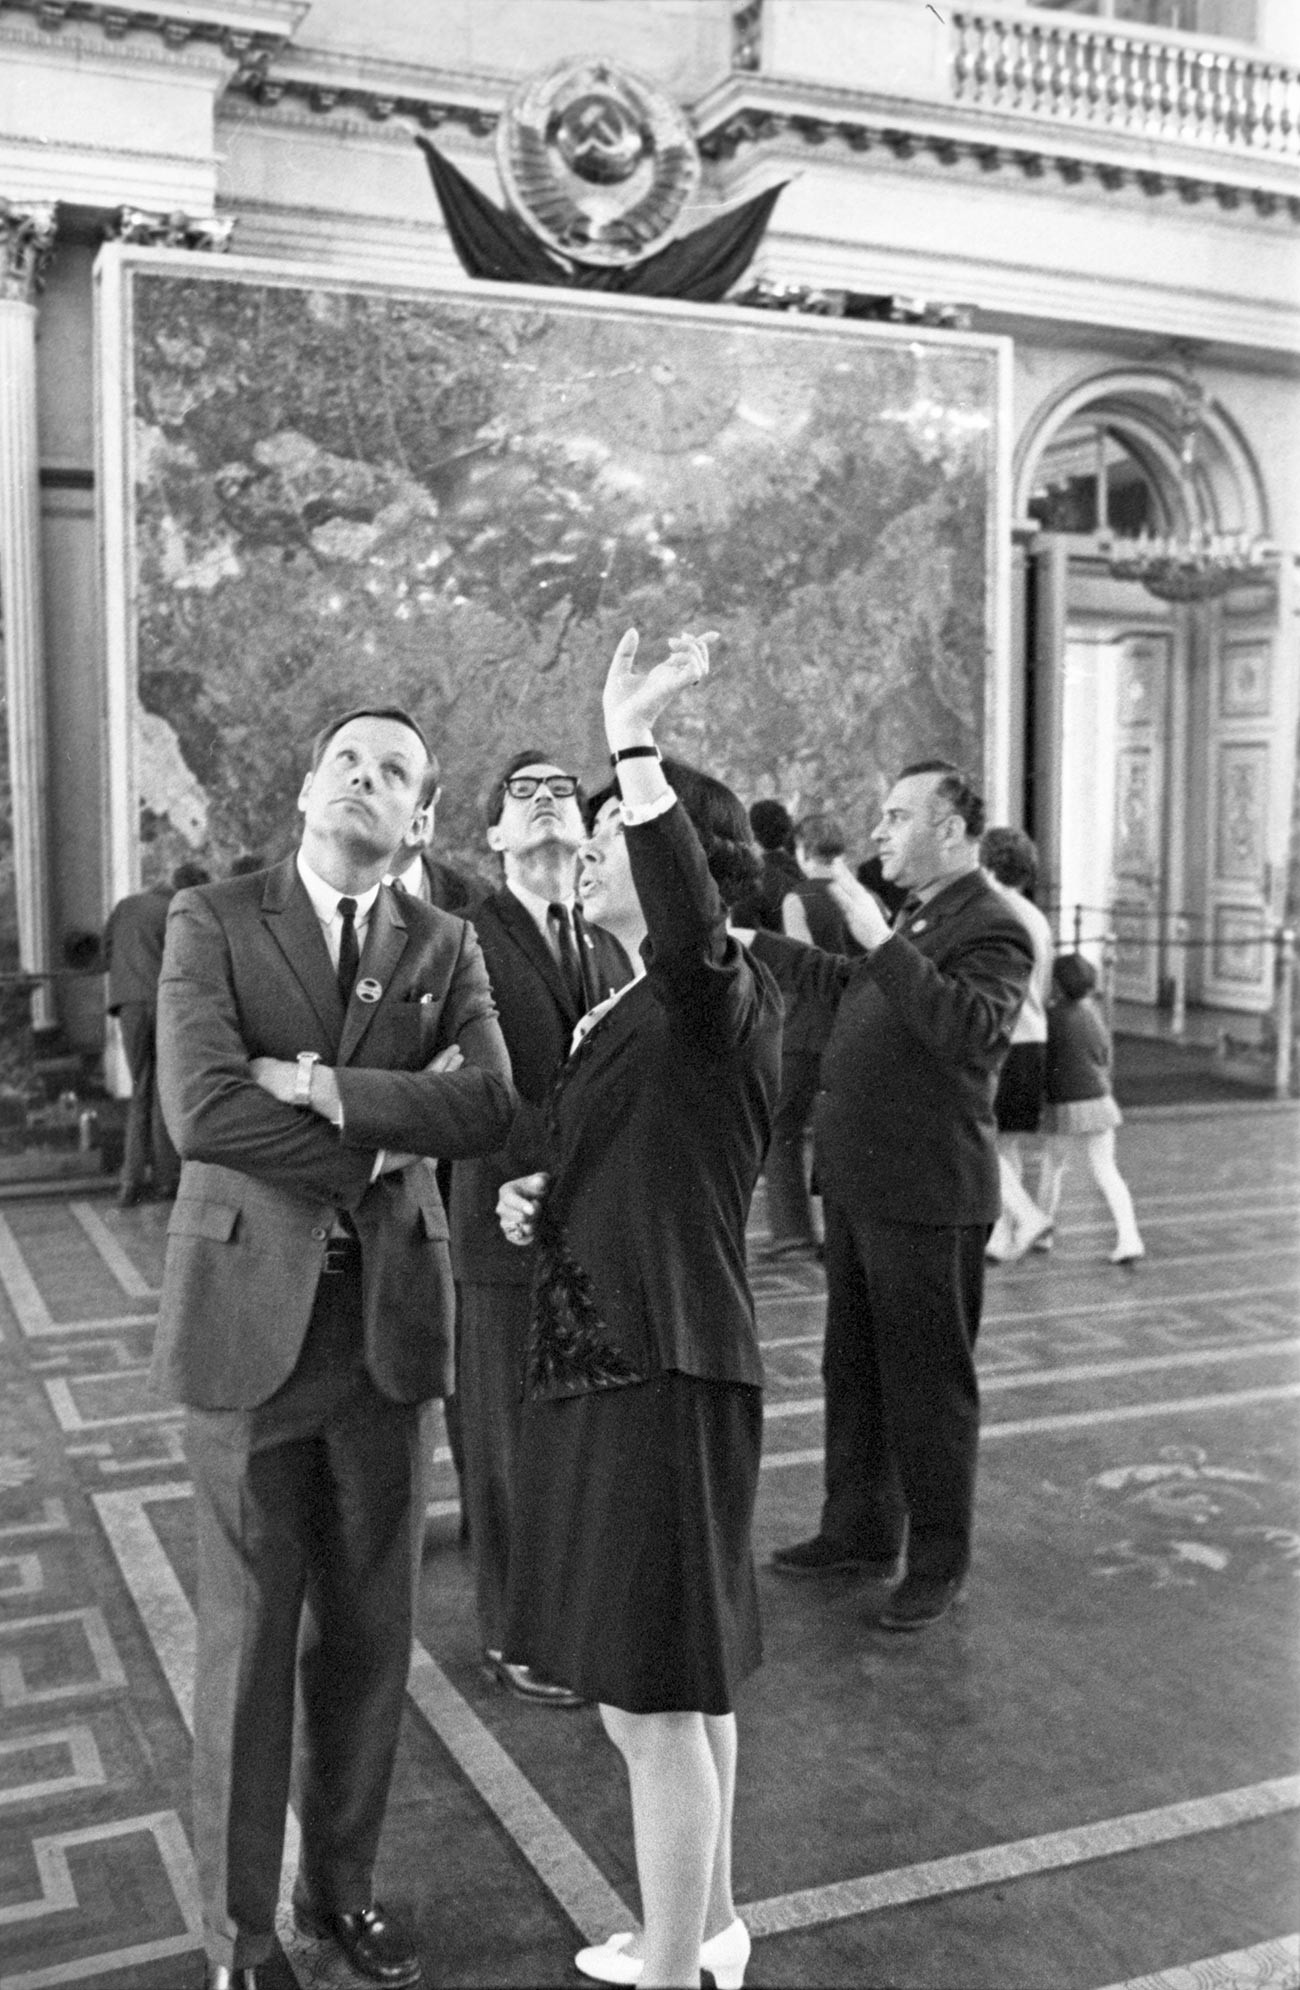 Neil Armstrong visiting the Hermitage Museum.